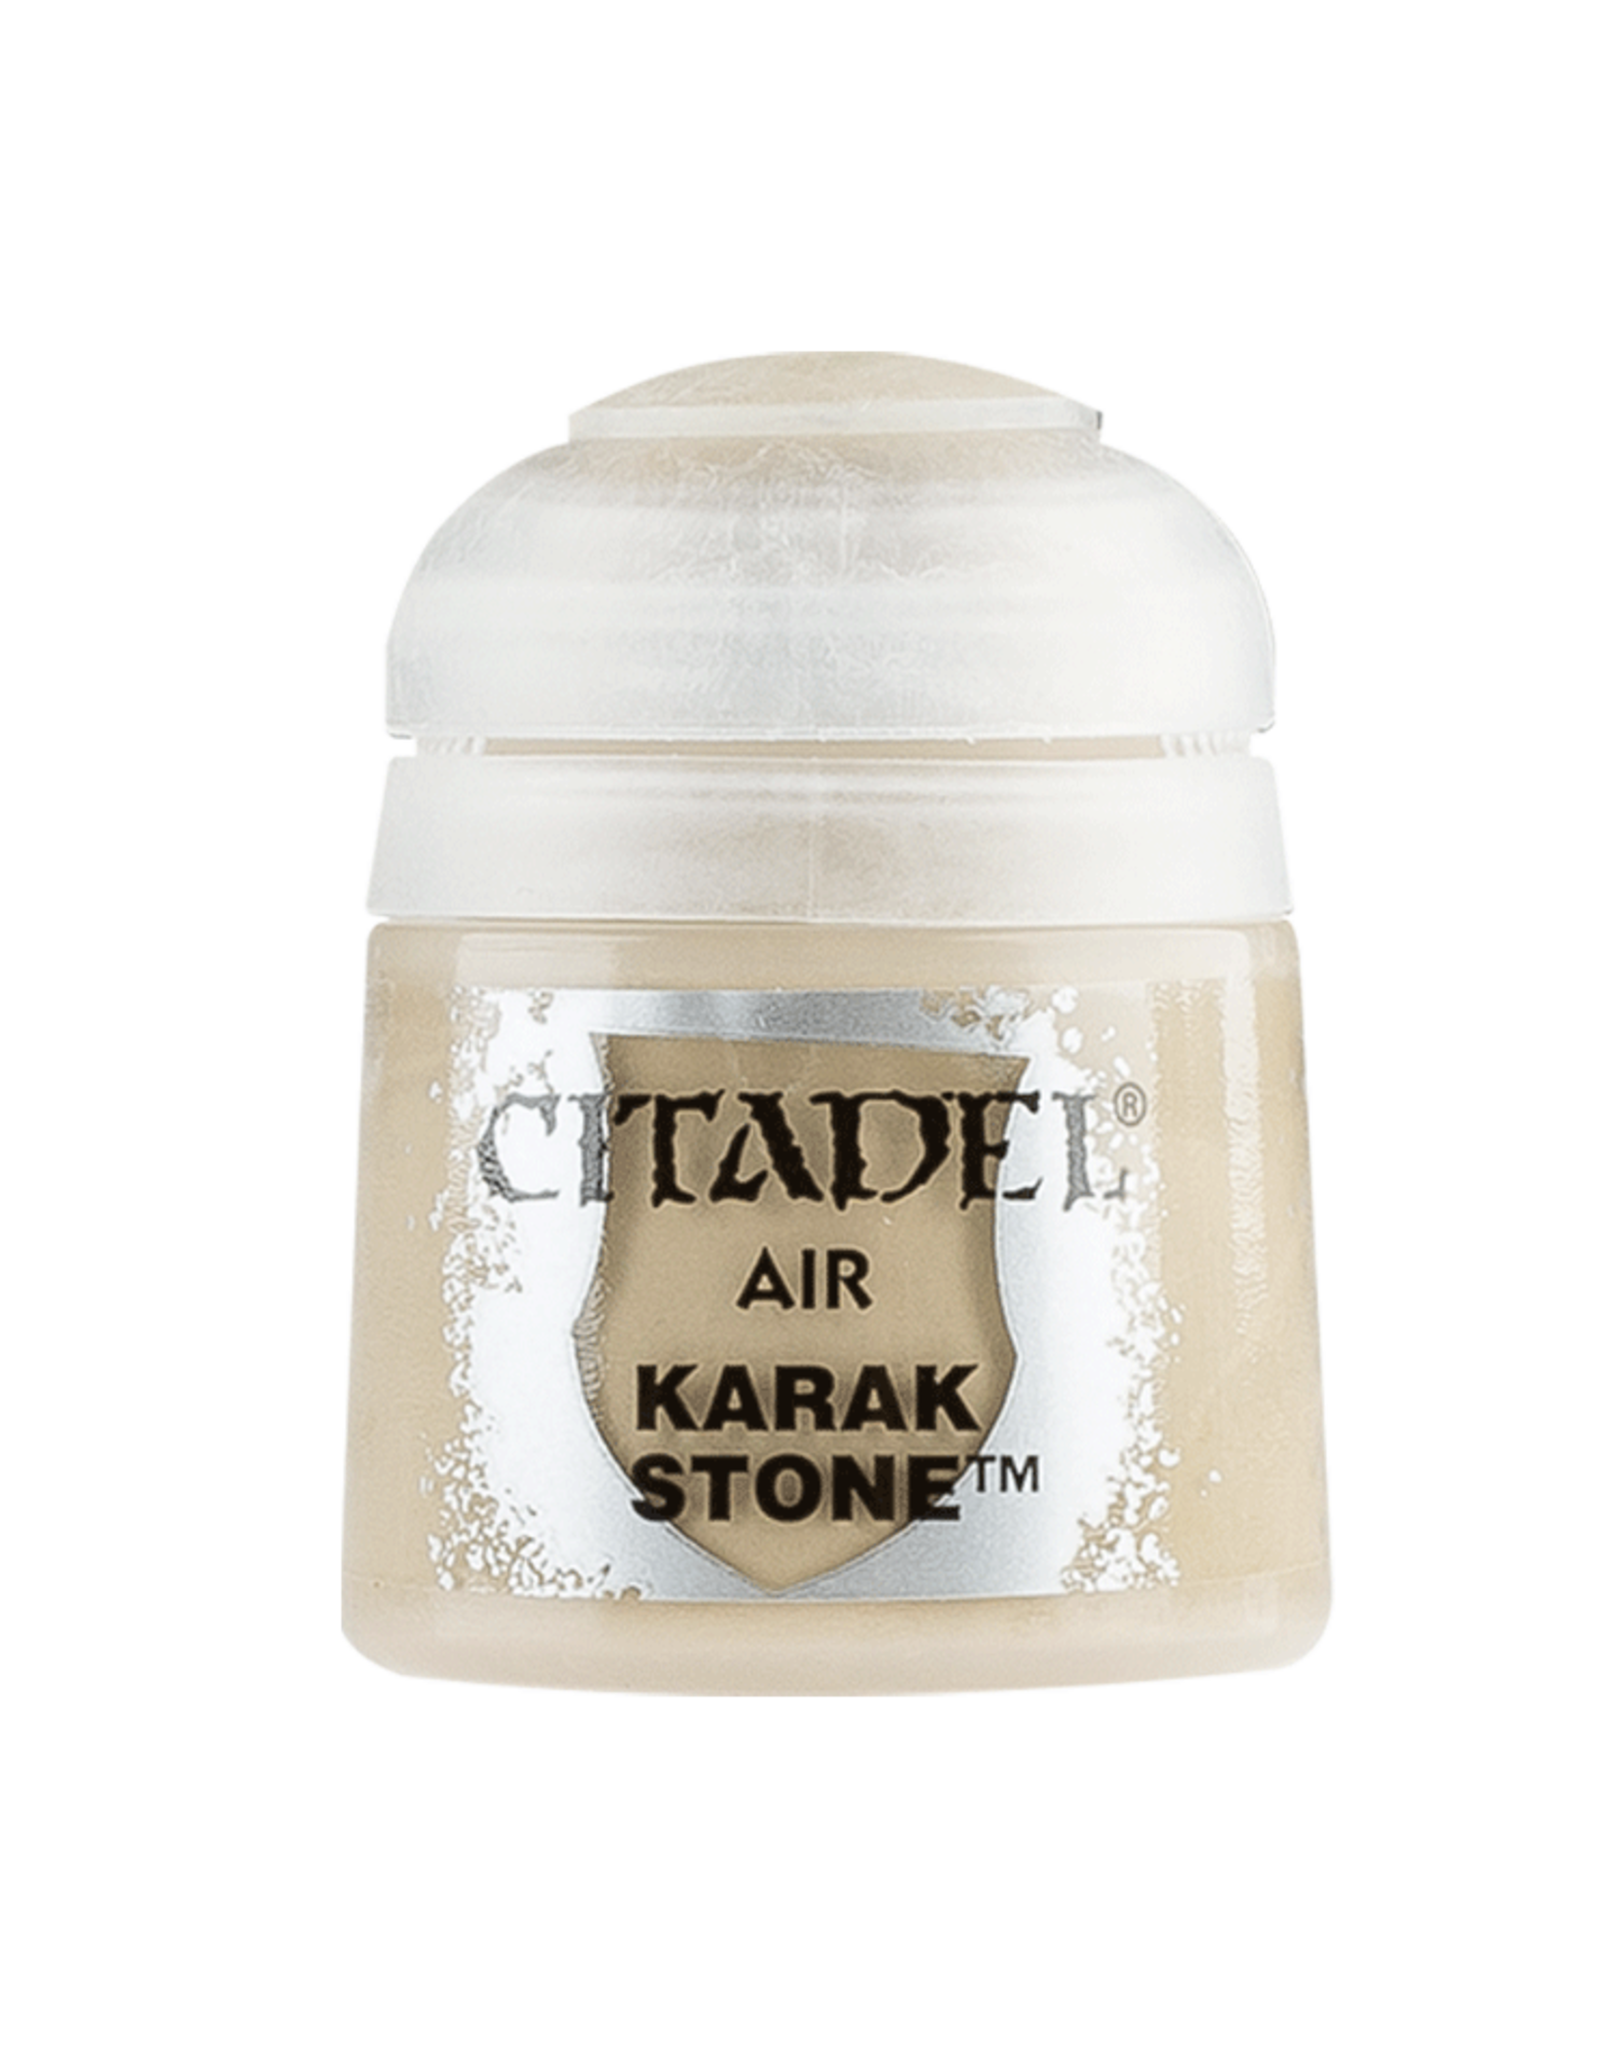 Games Workshop Citadel Air: Karak Stone (24ml)